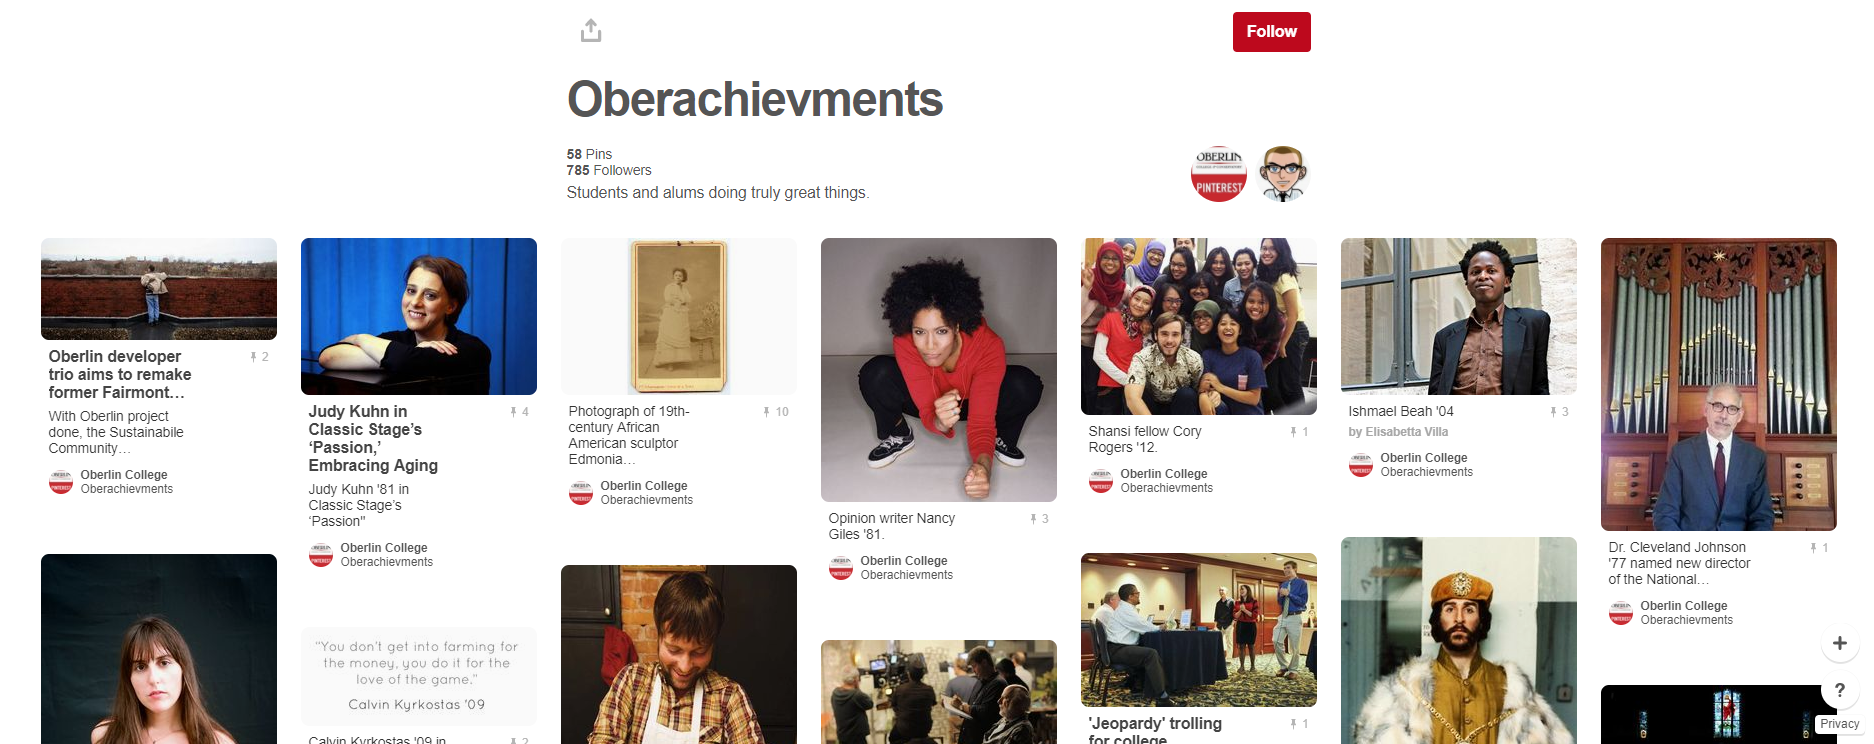 Oberachievements Pinterest board